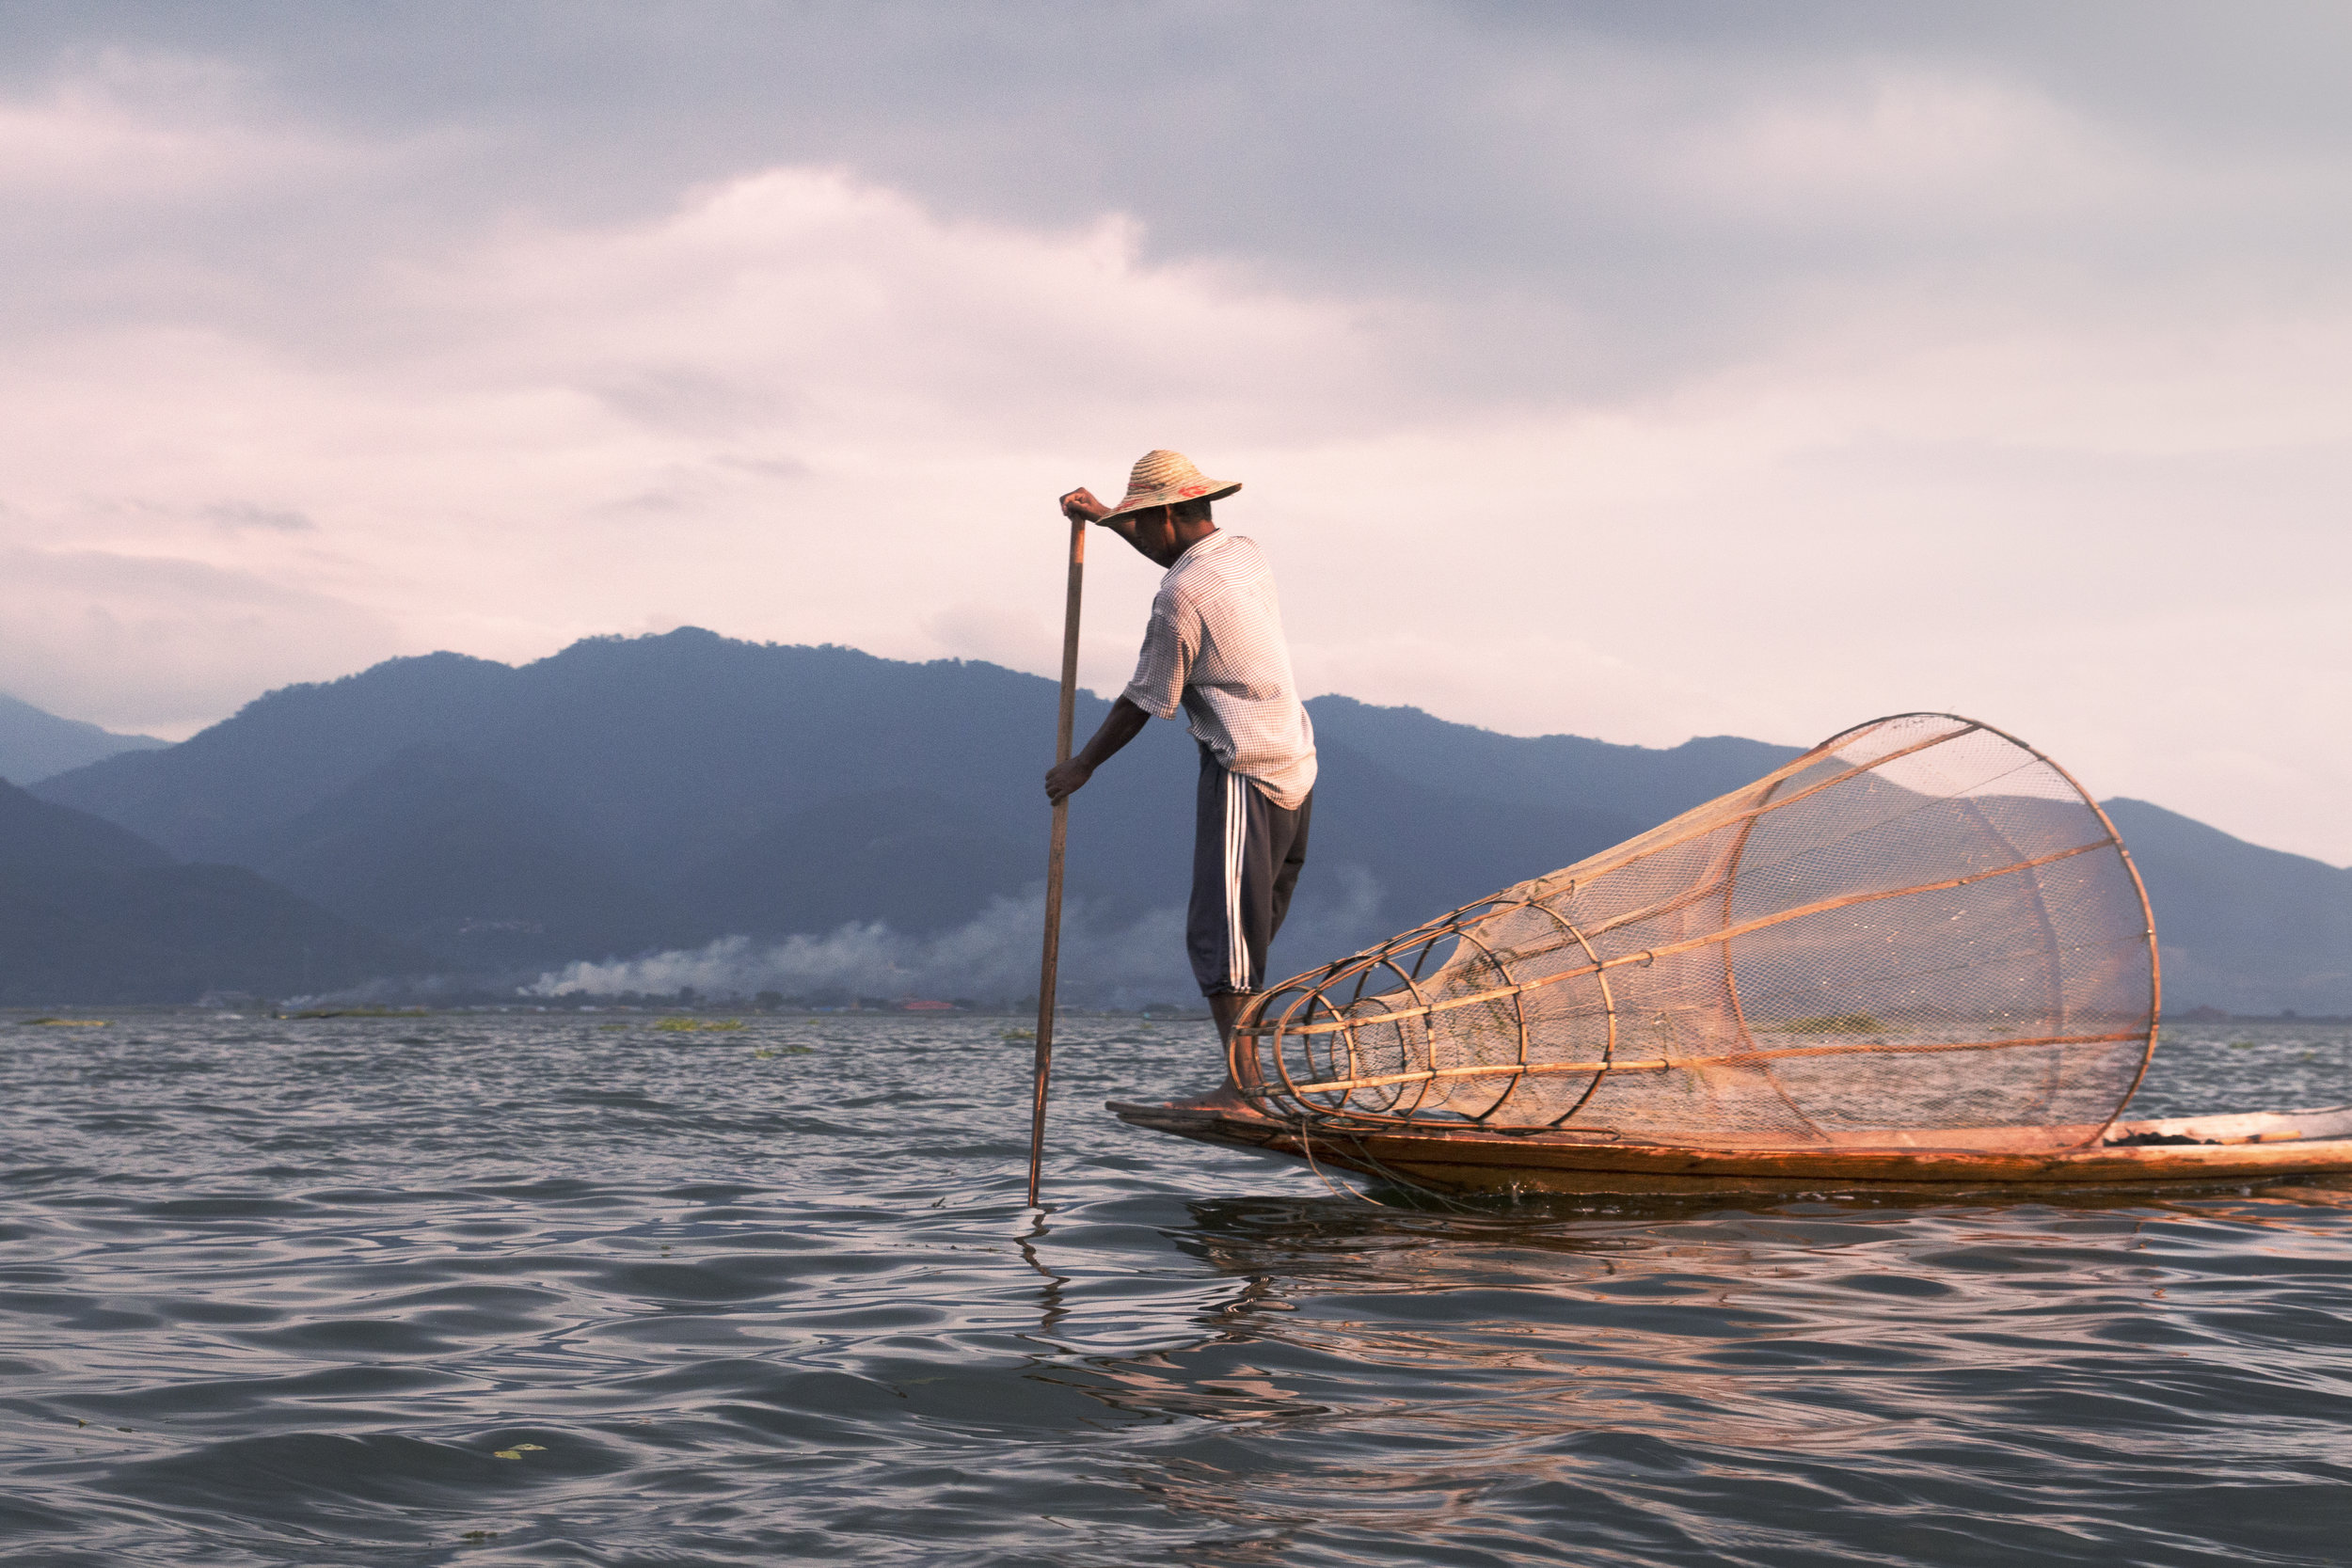 Fisherman at Sea. Public-Private Partnerships can help facilitate the creation of ports to help fishermen sell and export their seafood at the local and international markets.